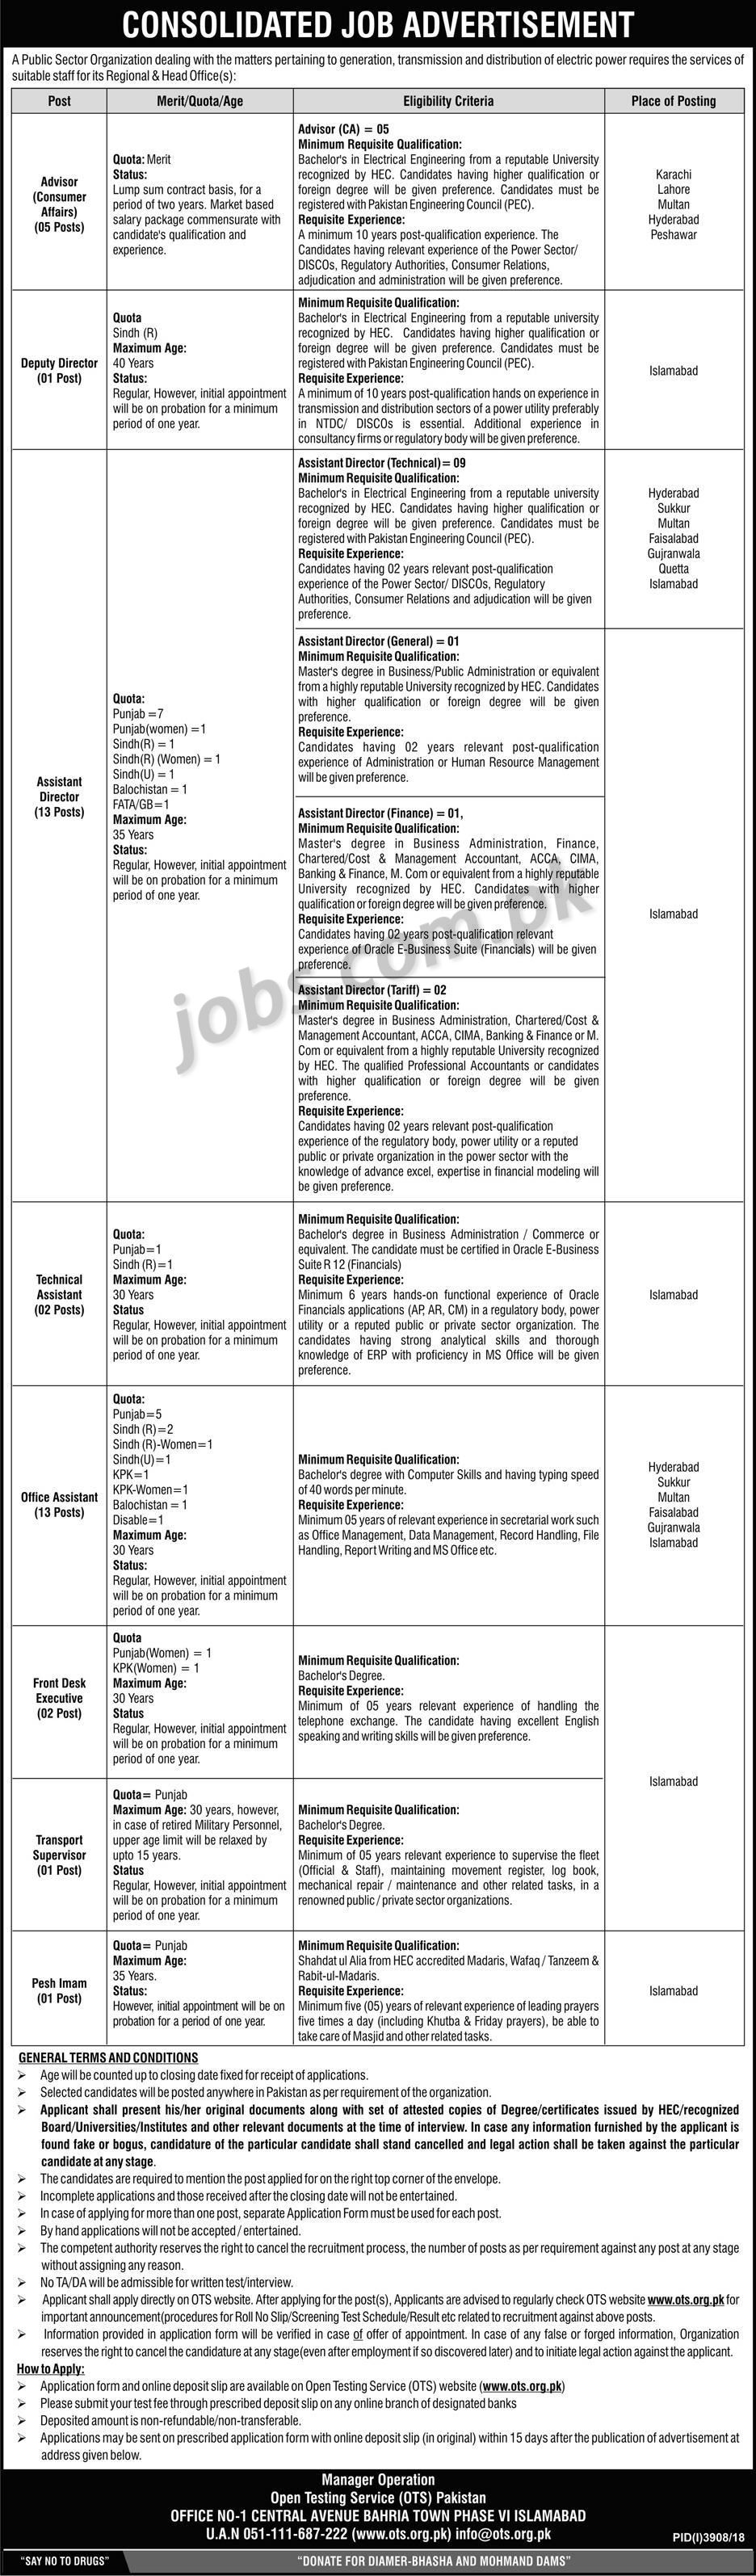 Wapda-ots-exp Ogdcl Application Form For Job on free generic, blank generic, part time,